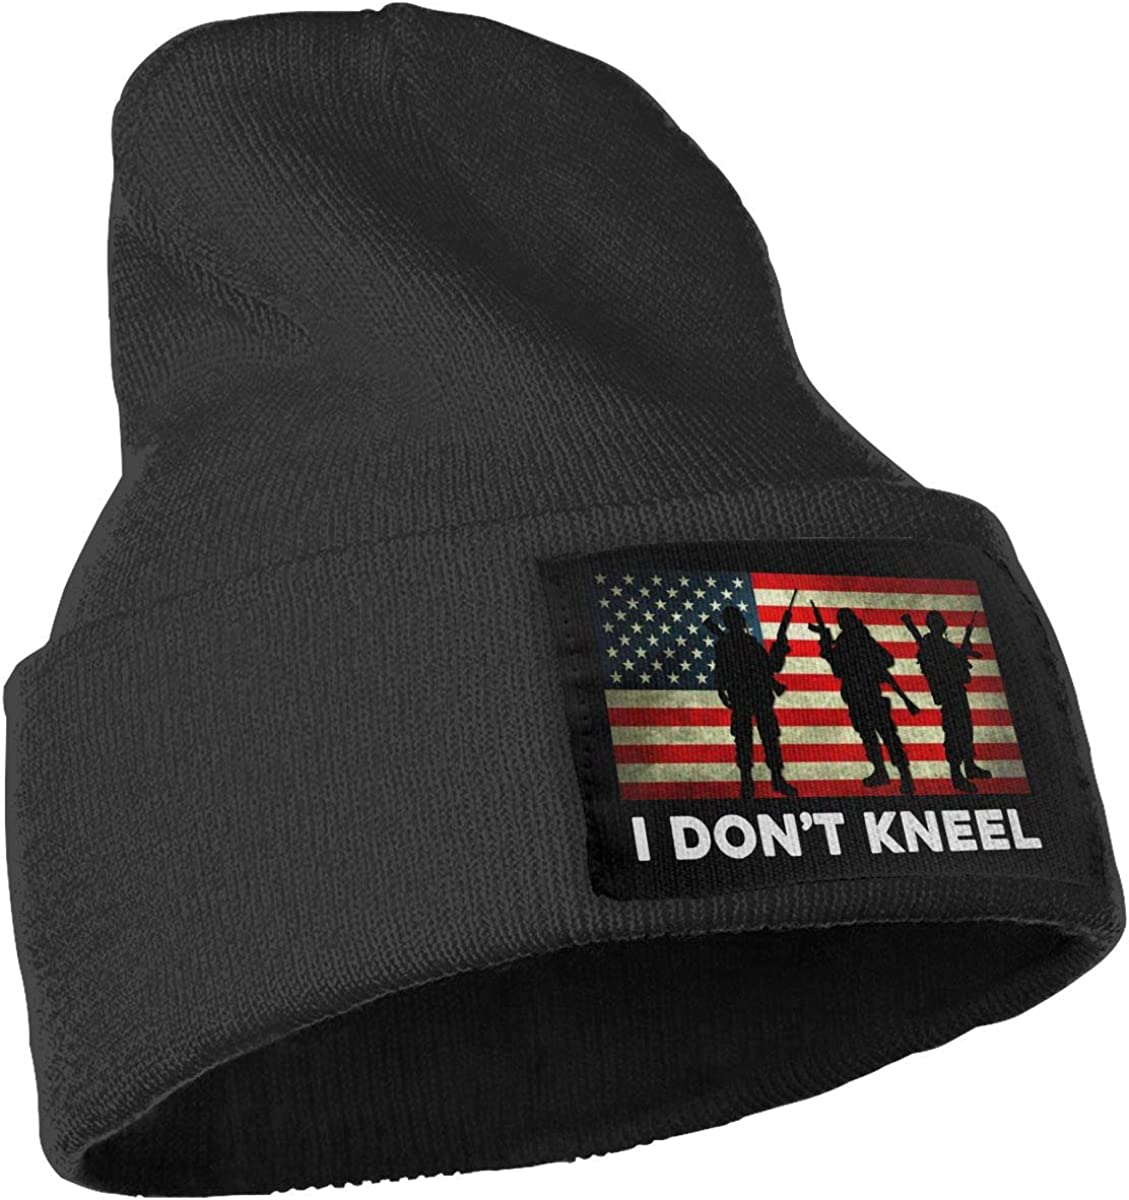 COLLJL-8 Men /& Women I Dont Kneel Outdoor Warm Knit Beanies Hat Soft Winter Skull Caps